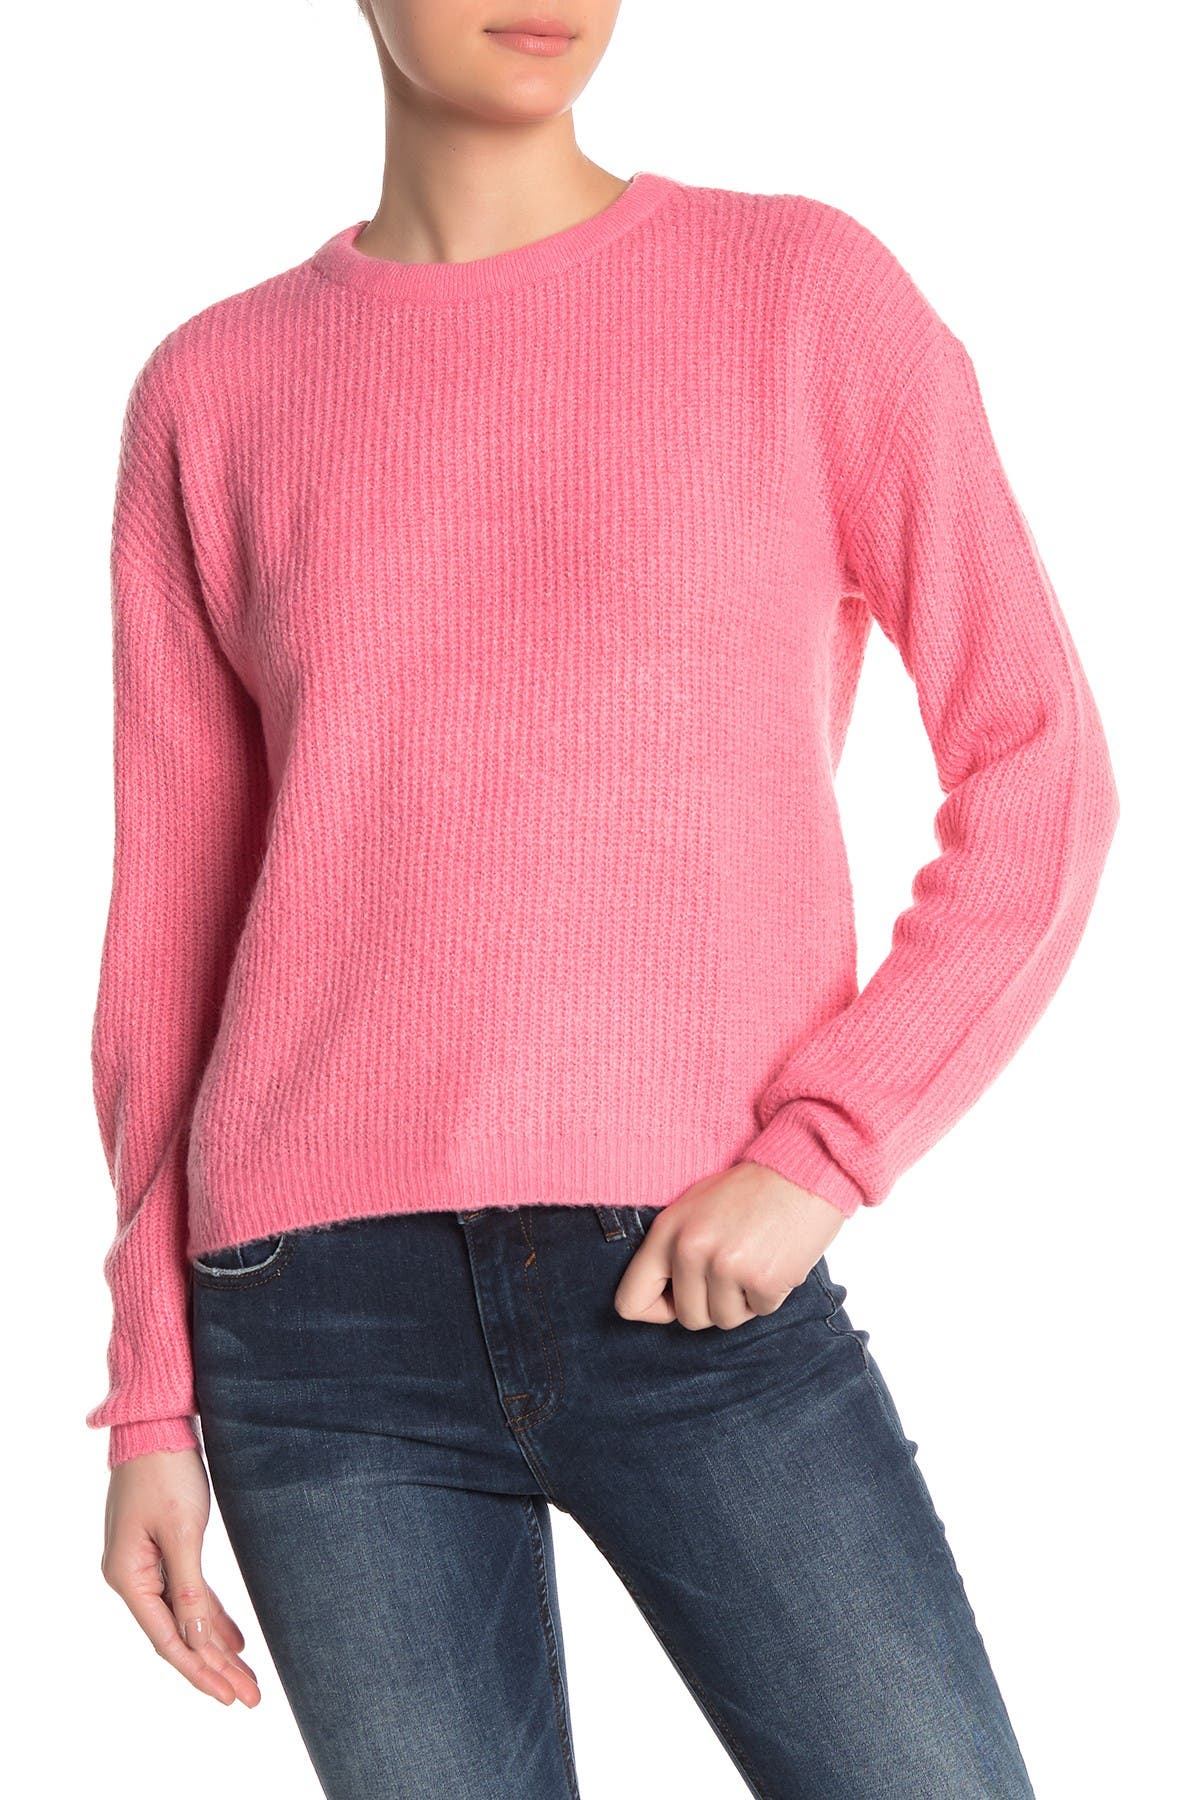 Image of VERO MODA Rana Tie Back Crew Neck Sweater